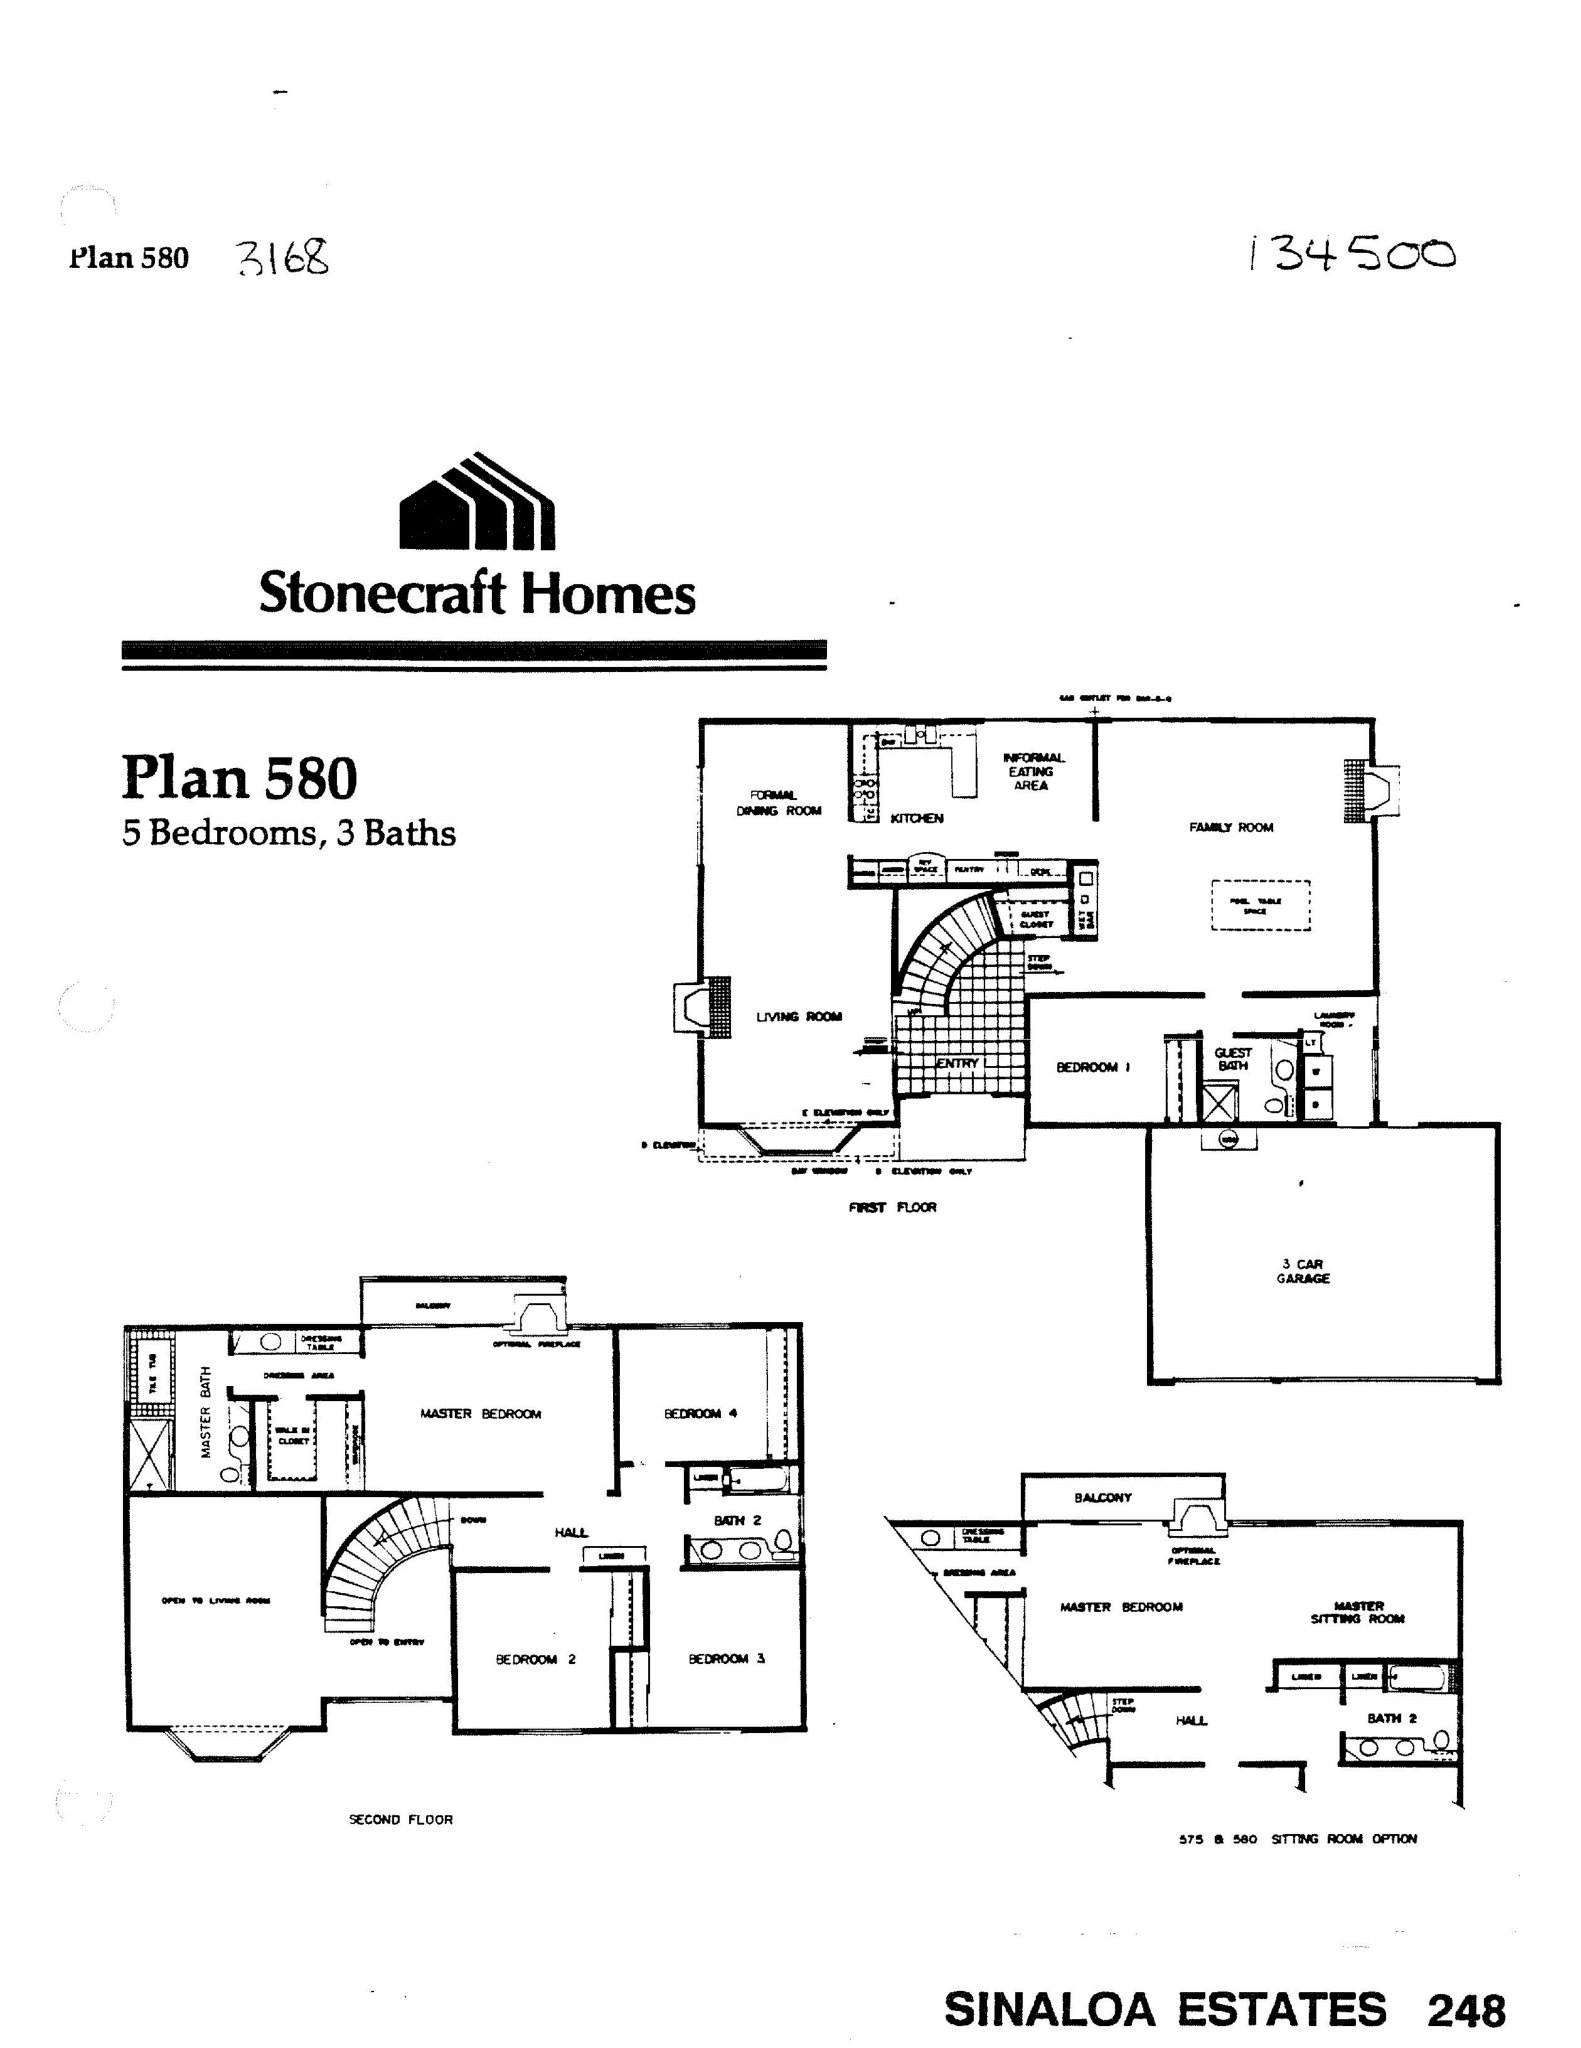 Sinaloa Estates - Plan 580